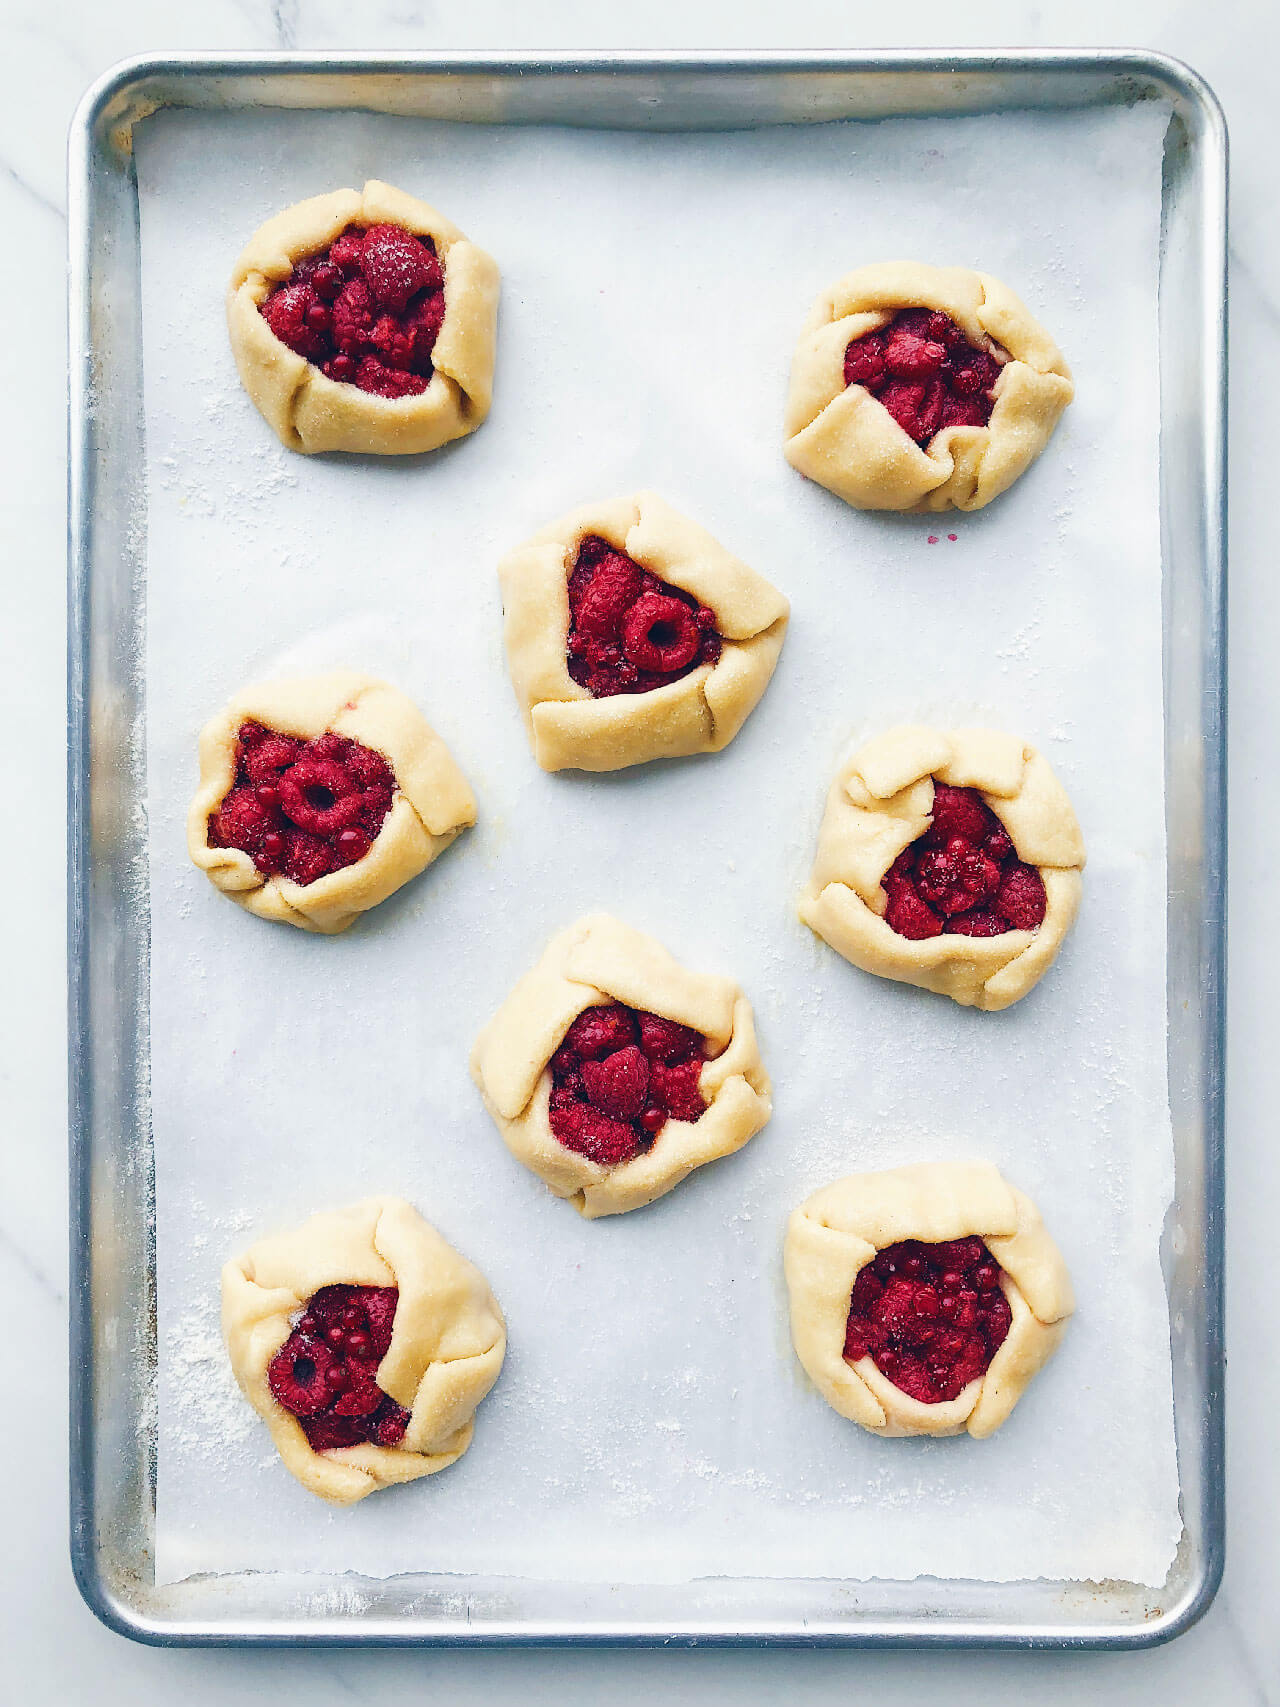 Homemade freeform mini raspberry galettes shaped and ready for the oven on a parchment-lined baking sheet